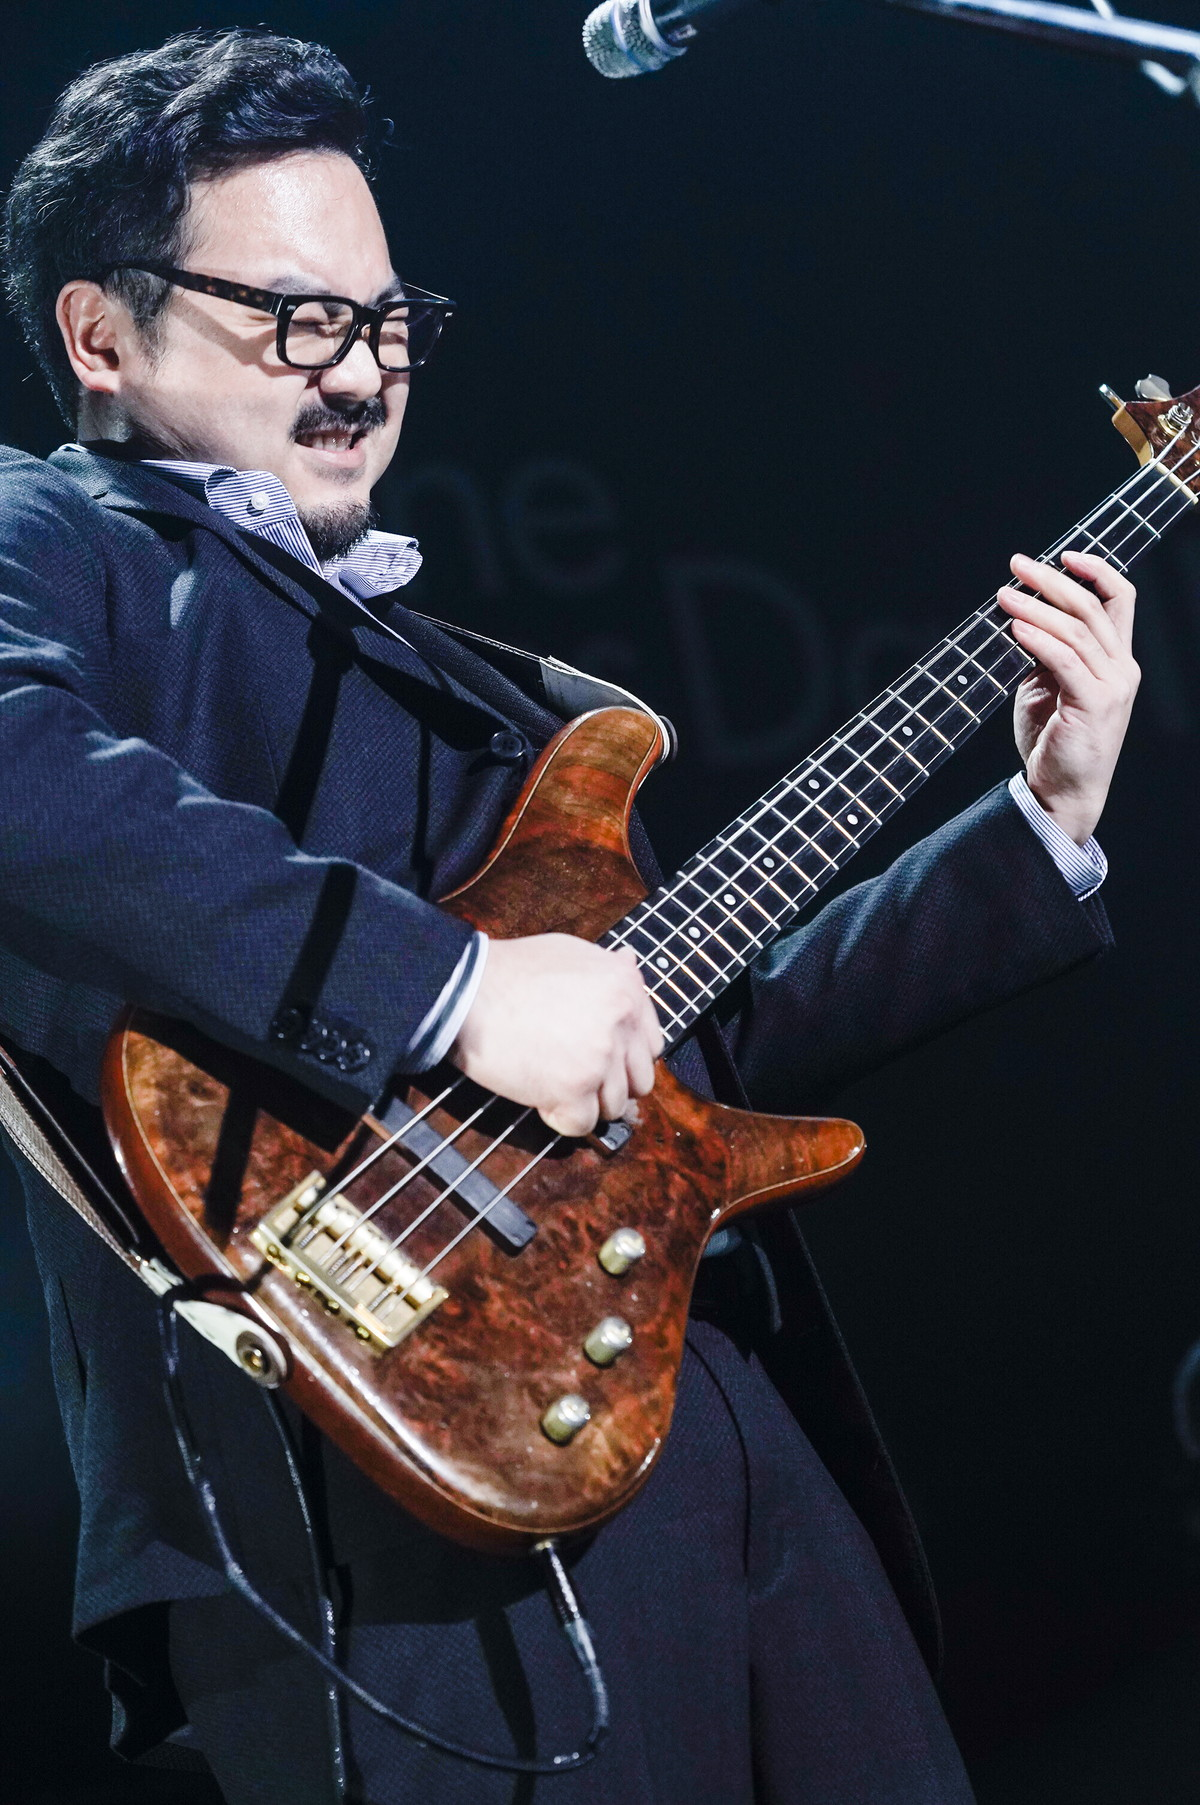 THE BASS DAY LIVE7